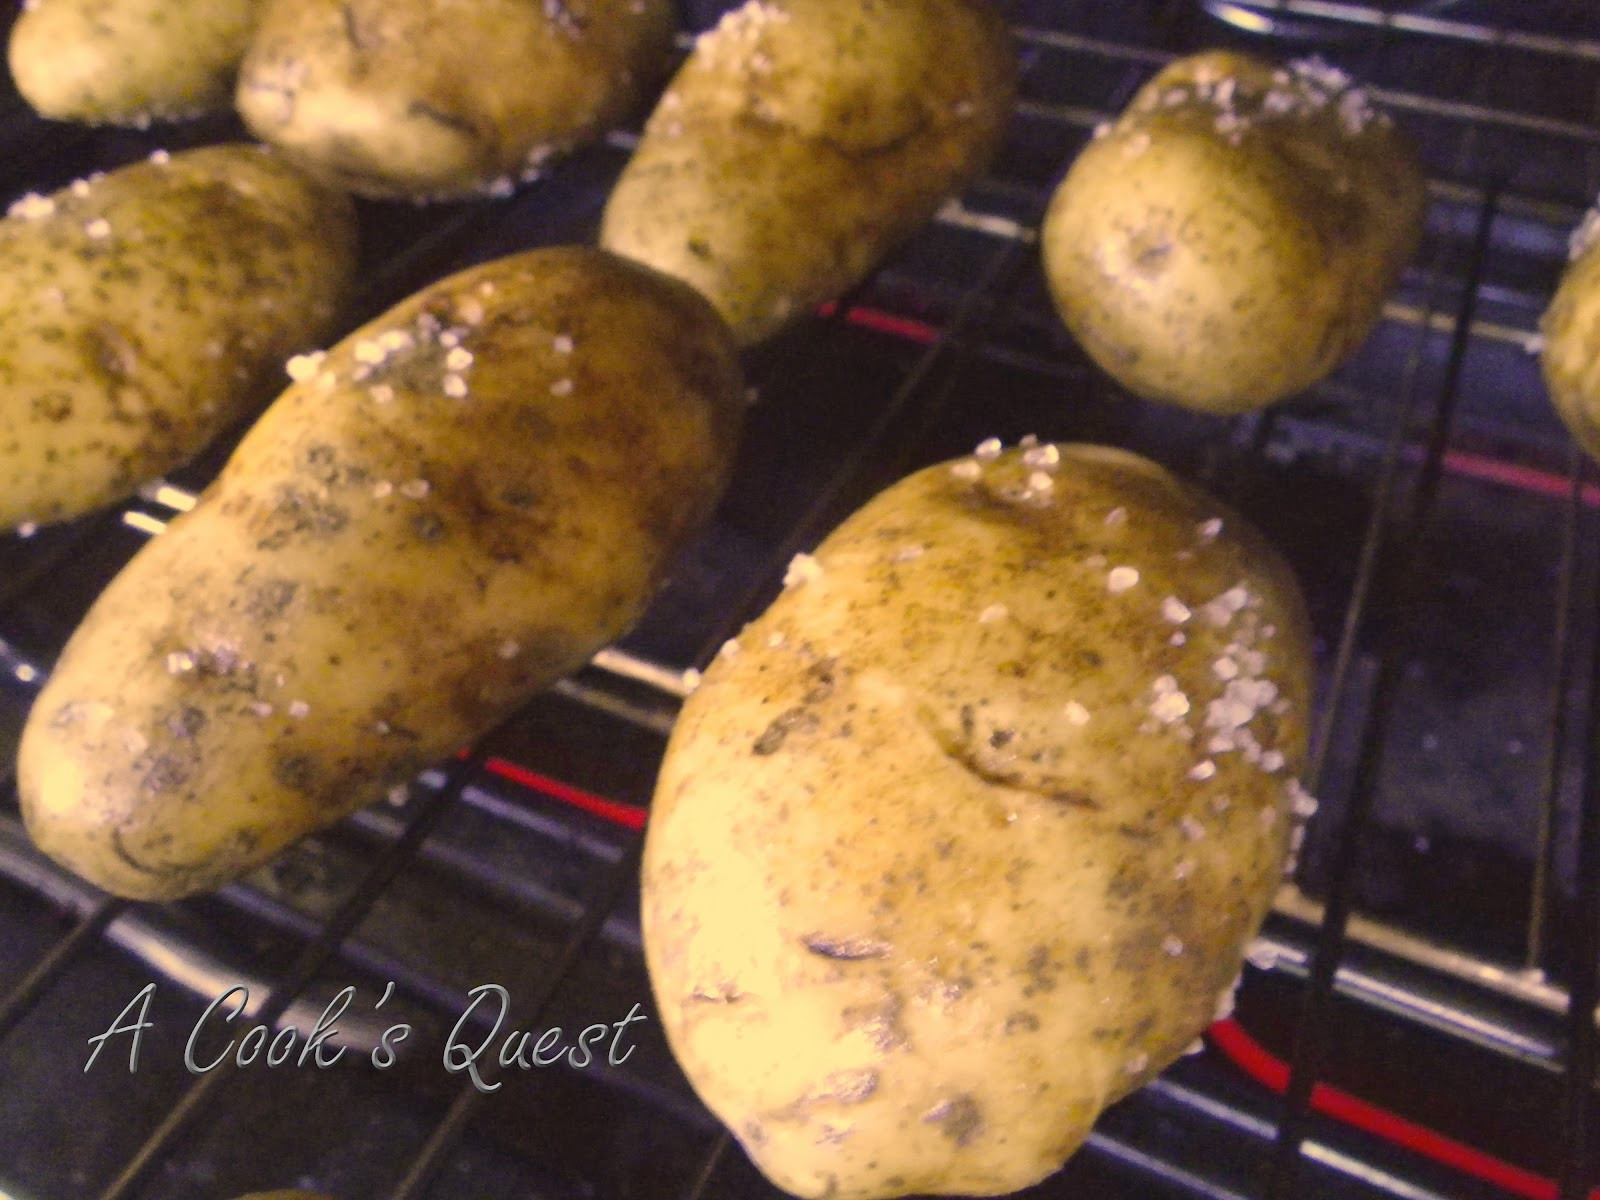 Baked Potato Oven  A Cook s Quest Baked Potatoes